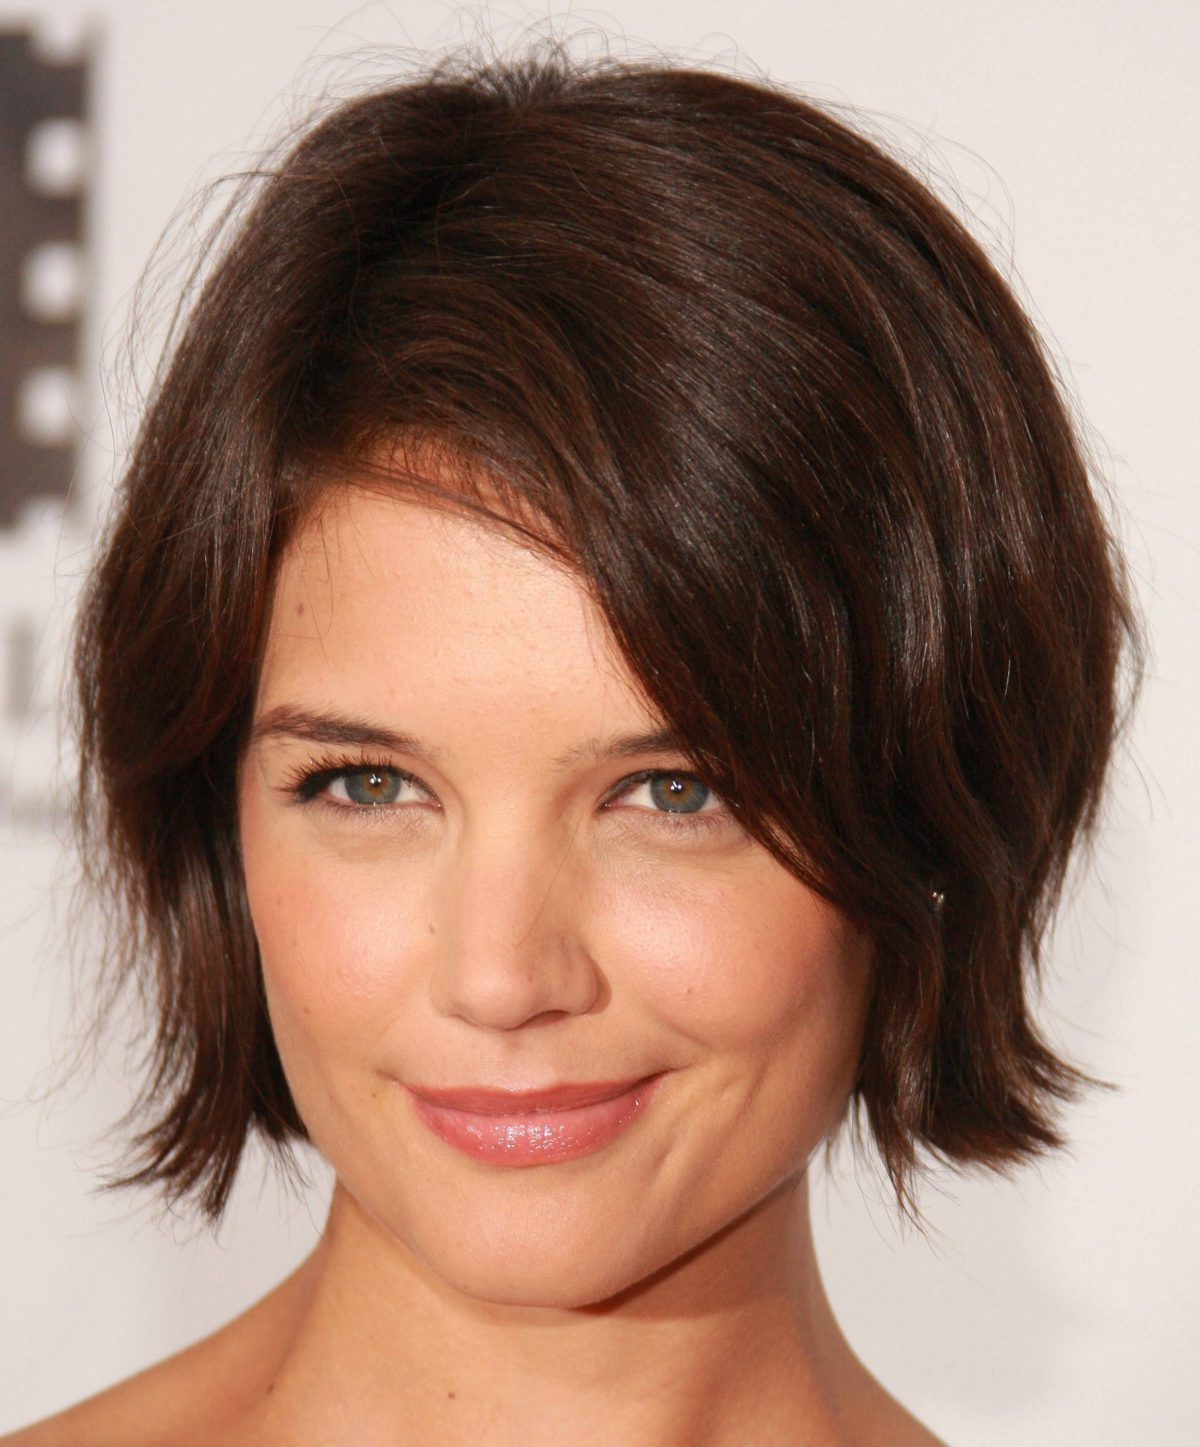 Best Short Hairstyles – Cute Hair Cut Guide For Round Face Shape Pertaining To Womens Short Haircuts For Round Faces (View 7 of 25)